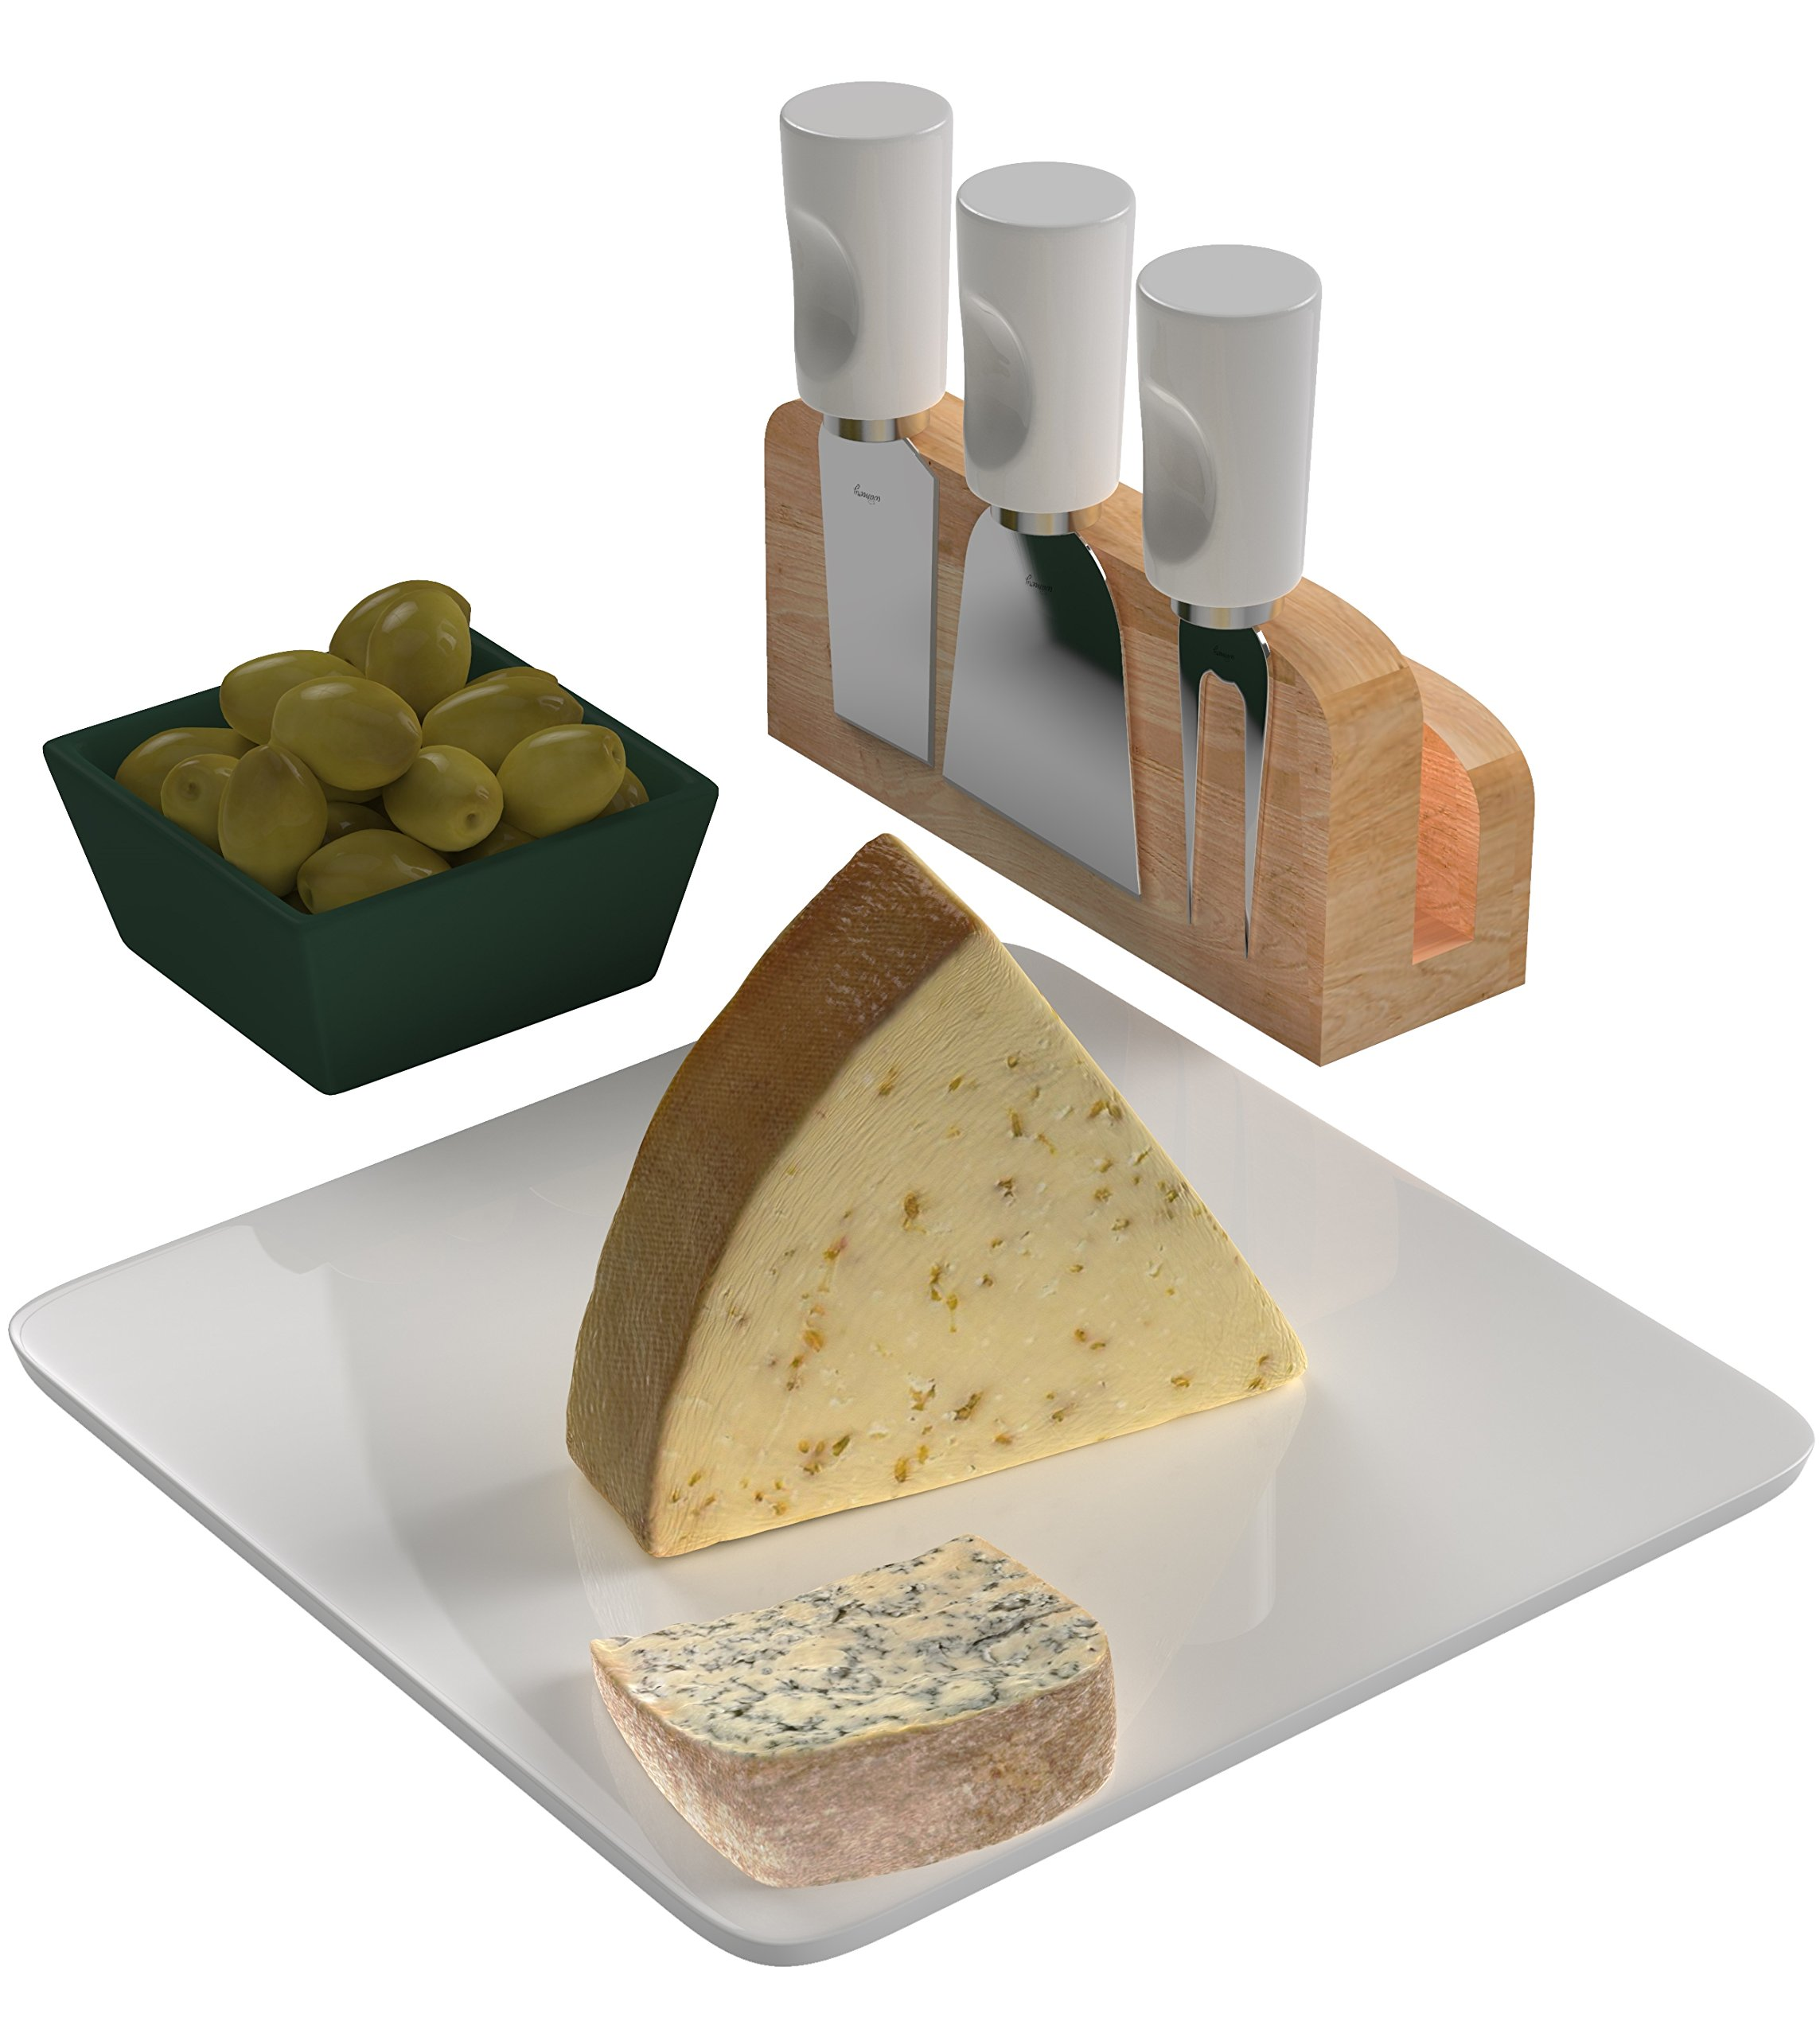 Wamery Cheese board & Knives set. 5 Pieces, Stainless Steel Shaver, Slicer & Cheese fork, Ceramic cutting board and Wooden holder. Cut, Slice, Shave, and Serve any kind of cheese